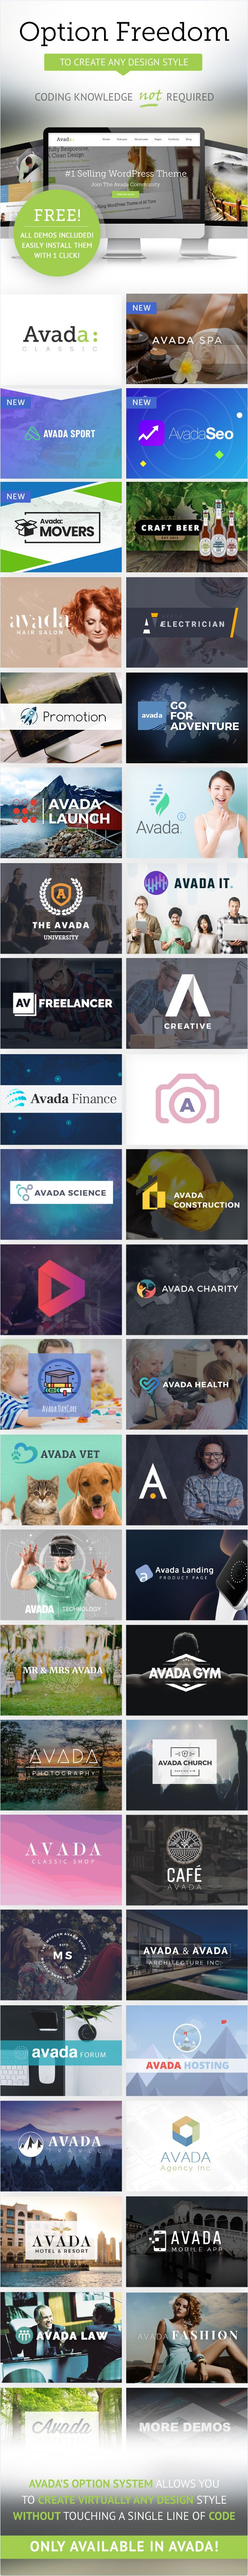 Avada Responsive Multi Purpose Theme By Themefusion Themeforest This Fits Beautifully Into The Overall Style Of Game Is Gdpr Ready And Always Compatible With Latest Versions Wordpress Including 50 Gutenberg As Well All Popular Plugins Listed In